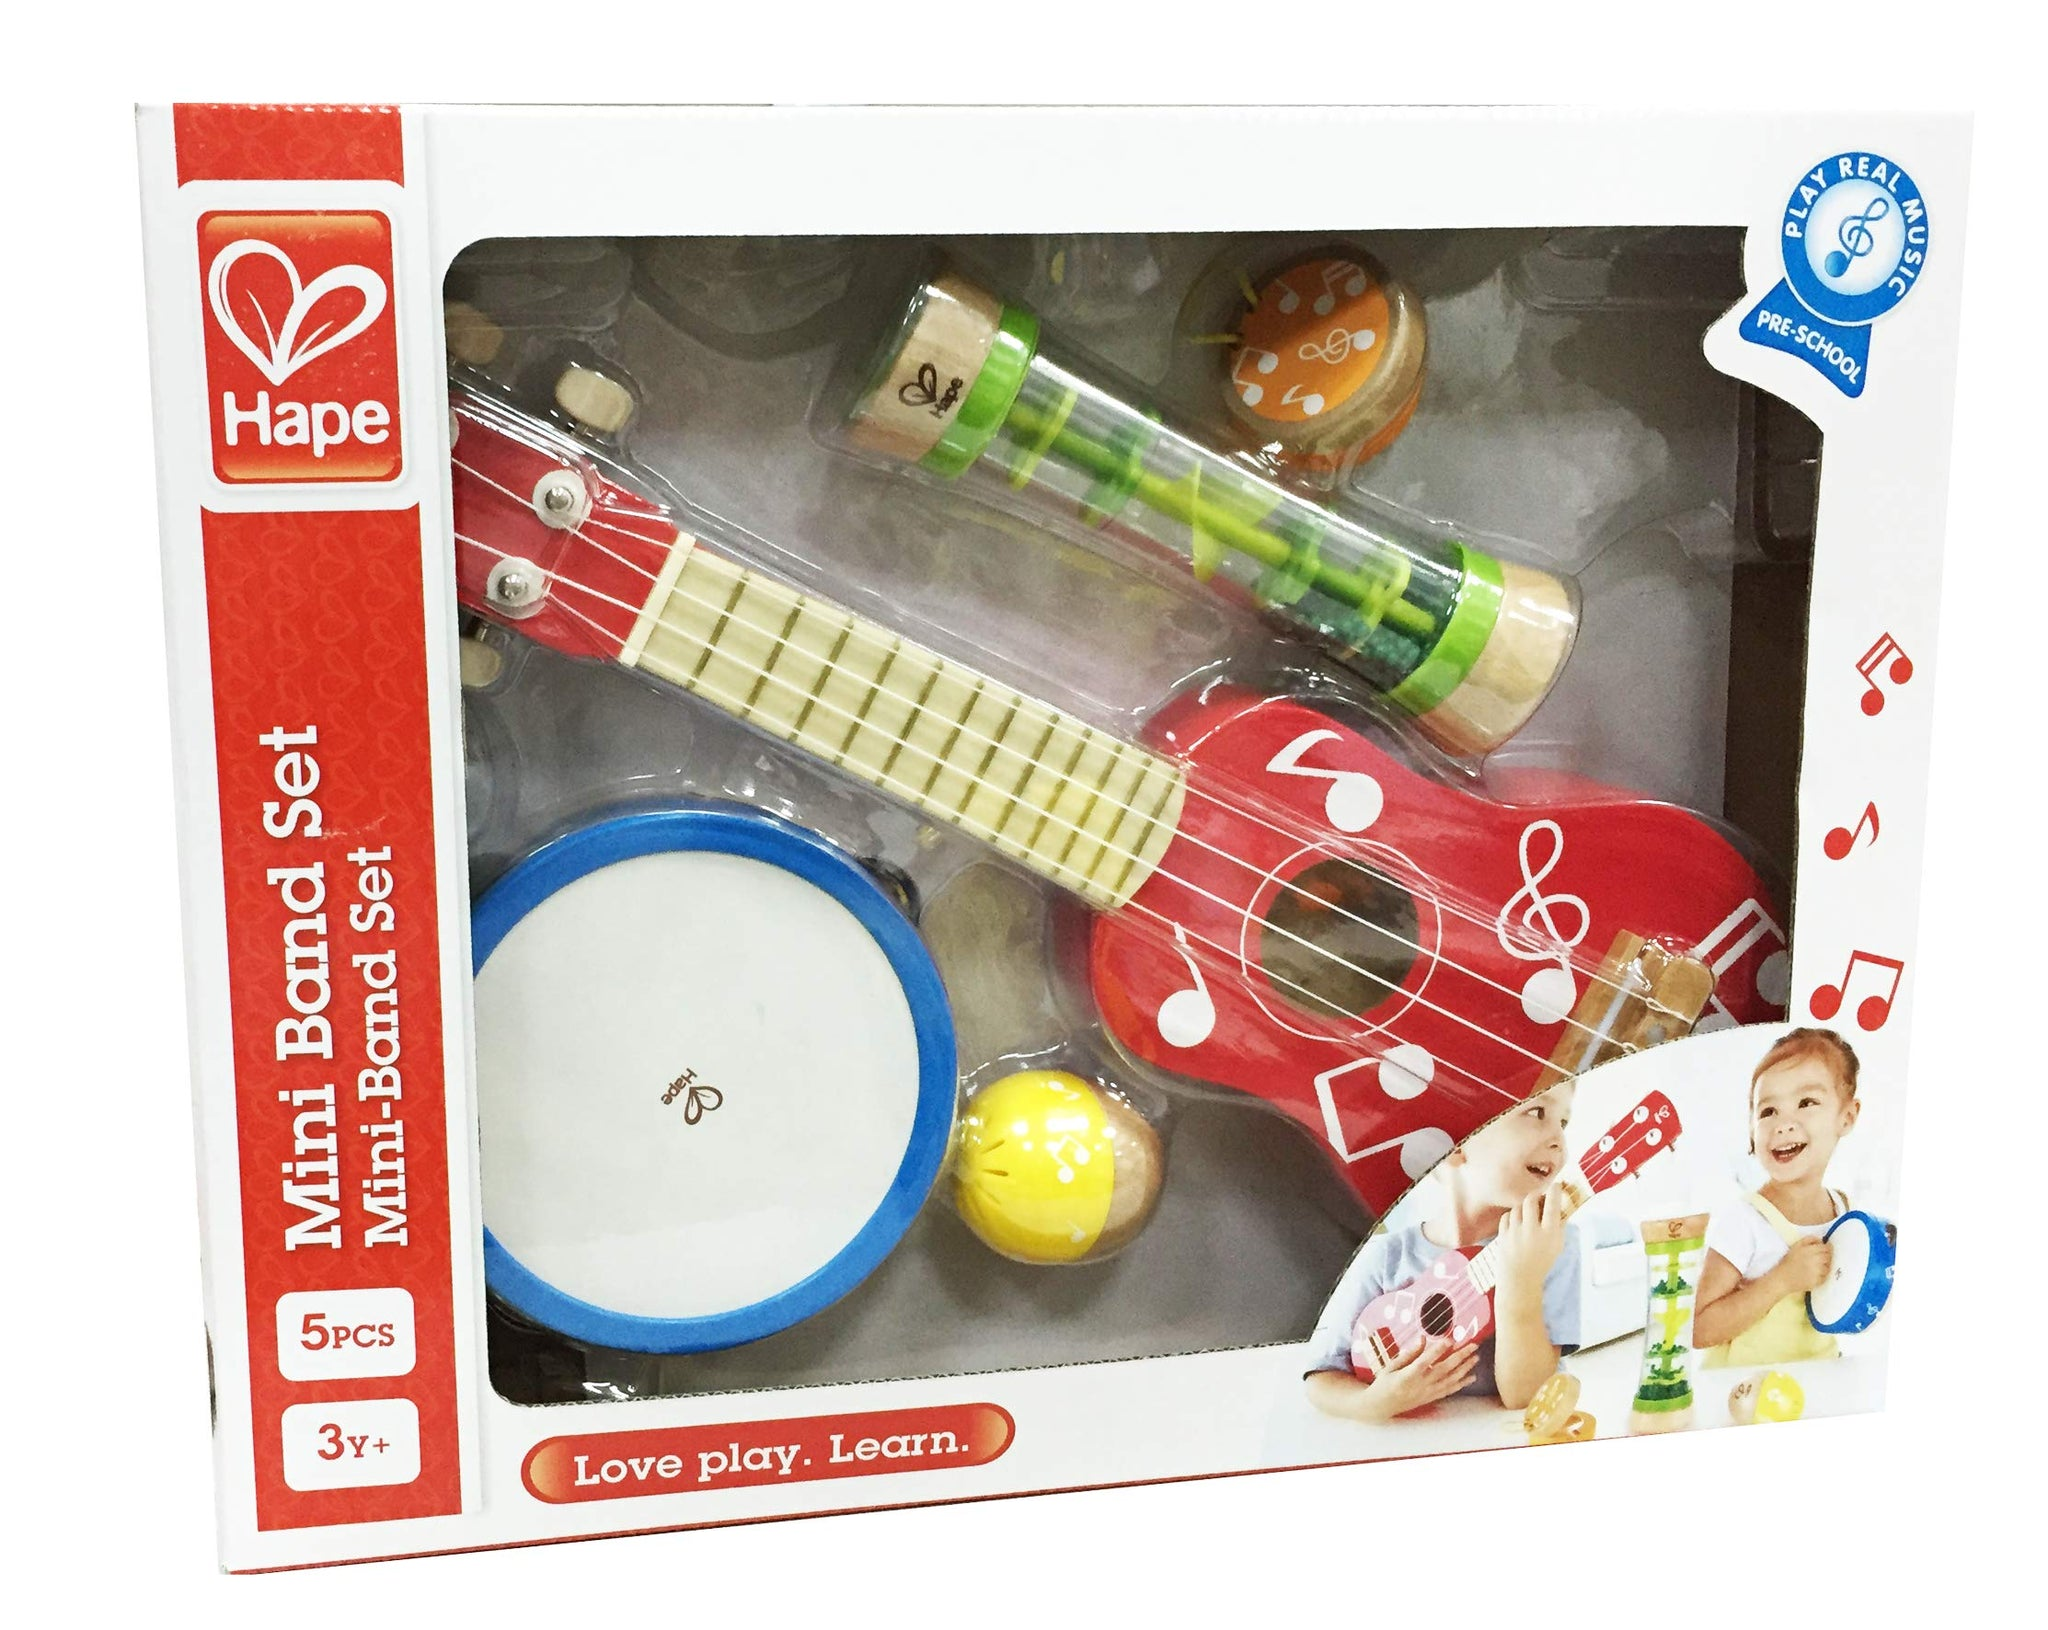 Hape Mini Band Instrument Set | Five Piece Wooden Instrument Music Set for Kids Includes Ukulele, Tambourine, Clapper, Rattle and Rainmaker